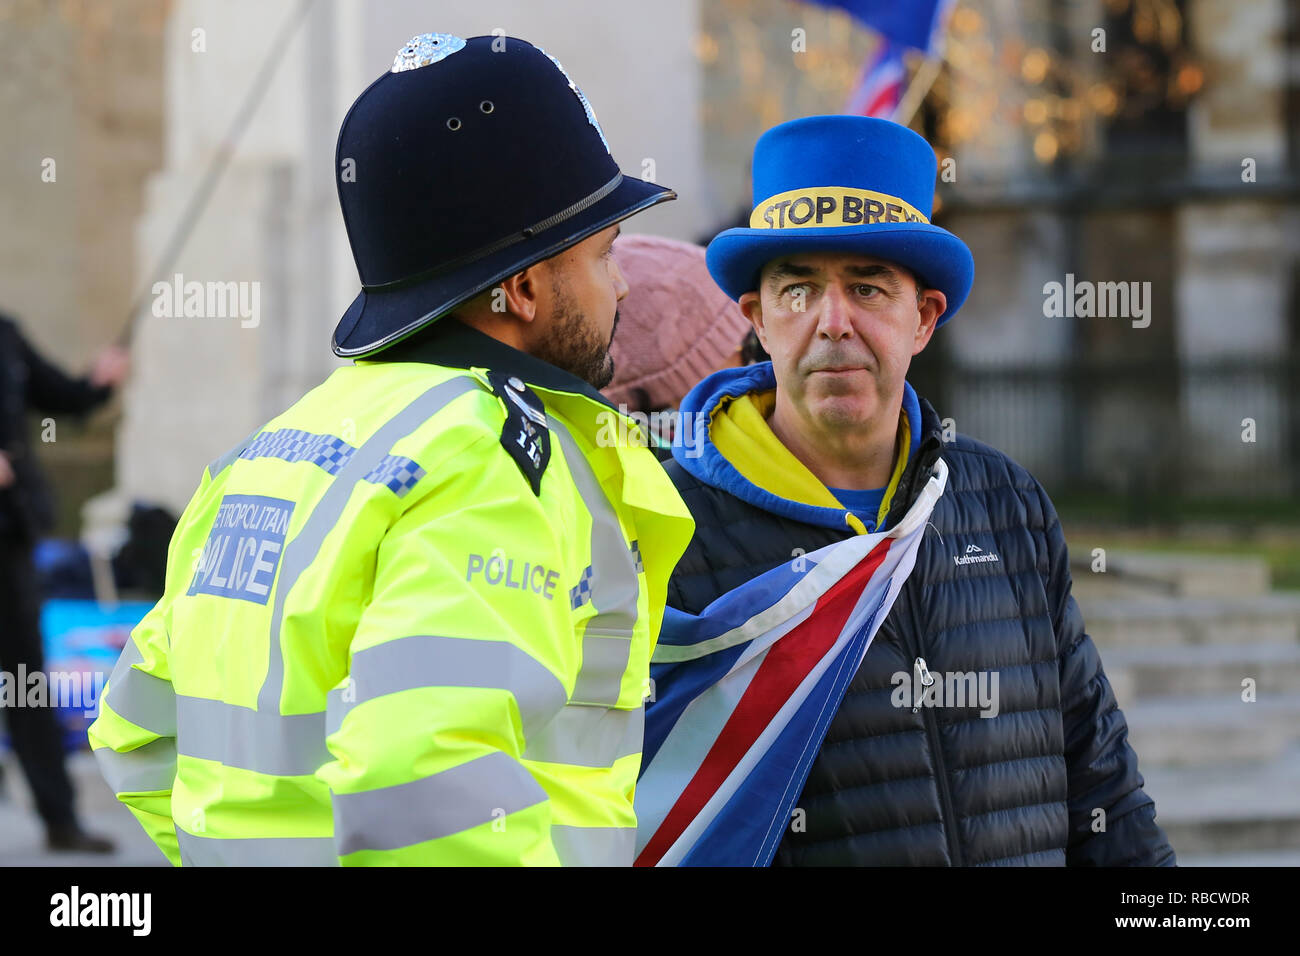 A pro-Brexit demonstrator seen wearing a blue hat saying stop Brexit during the protest. Anti Brexit demonstrators gather outside the British Parliament a week before the MPs to vote on the finalized Brexit deal, MPs will vote on Theresa May's Brexit deal on Tuesday, 15 January.' - Stock Image